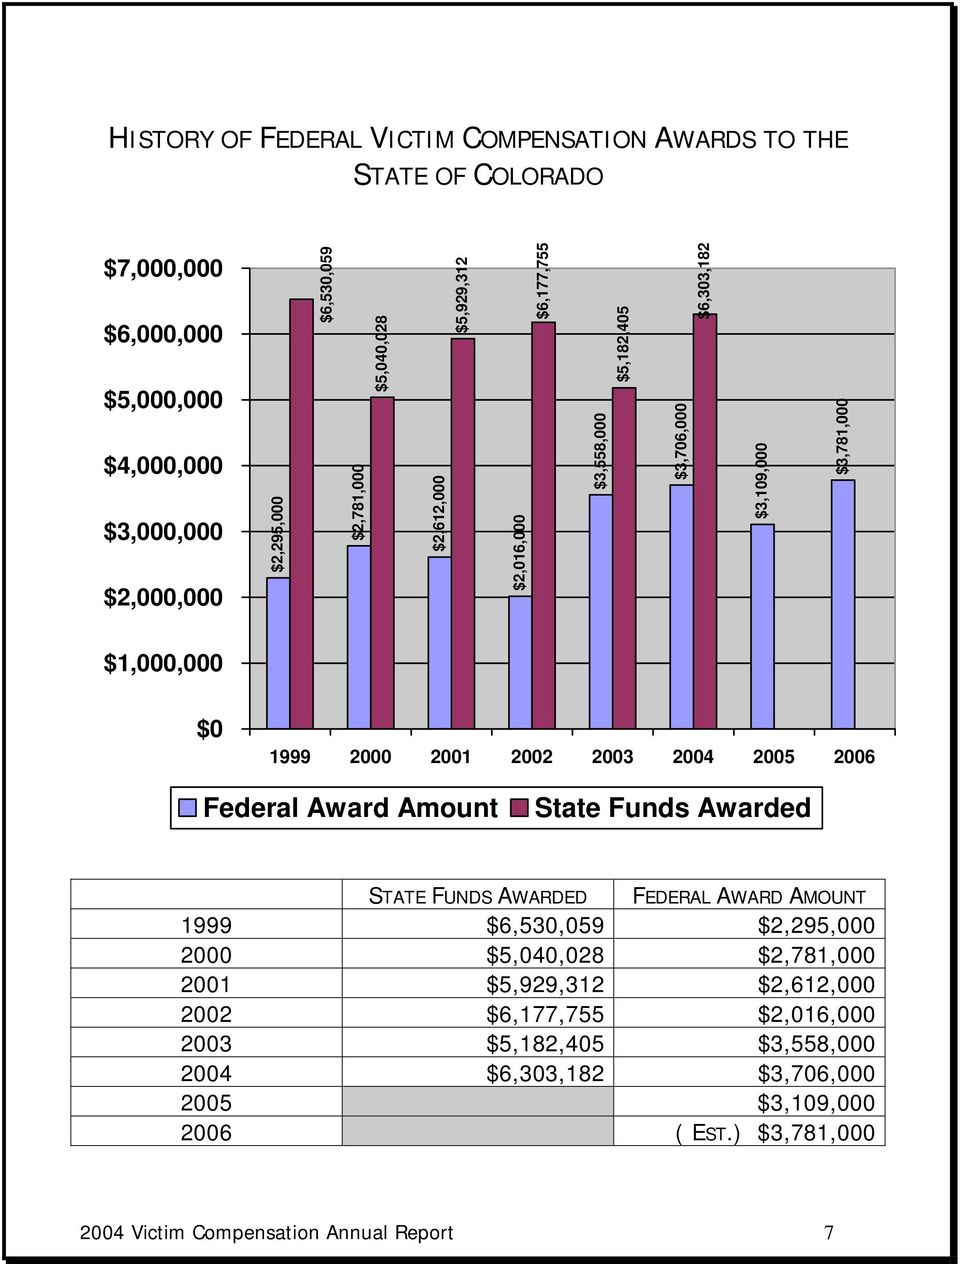 2003 2004 2005 2006 Federal Award Amount State Funds Awarded STATE FUNDS AWARDED FEDERAL AWARD AMOUNT 1999 $6,530,059 $2,295,000 2000 $5,040,028 $2,781,000 2001